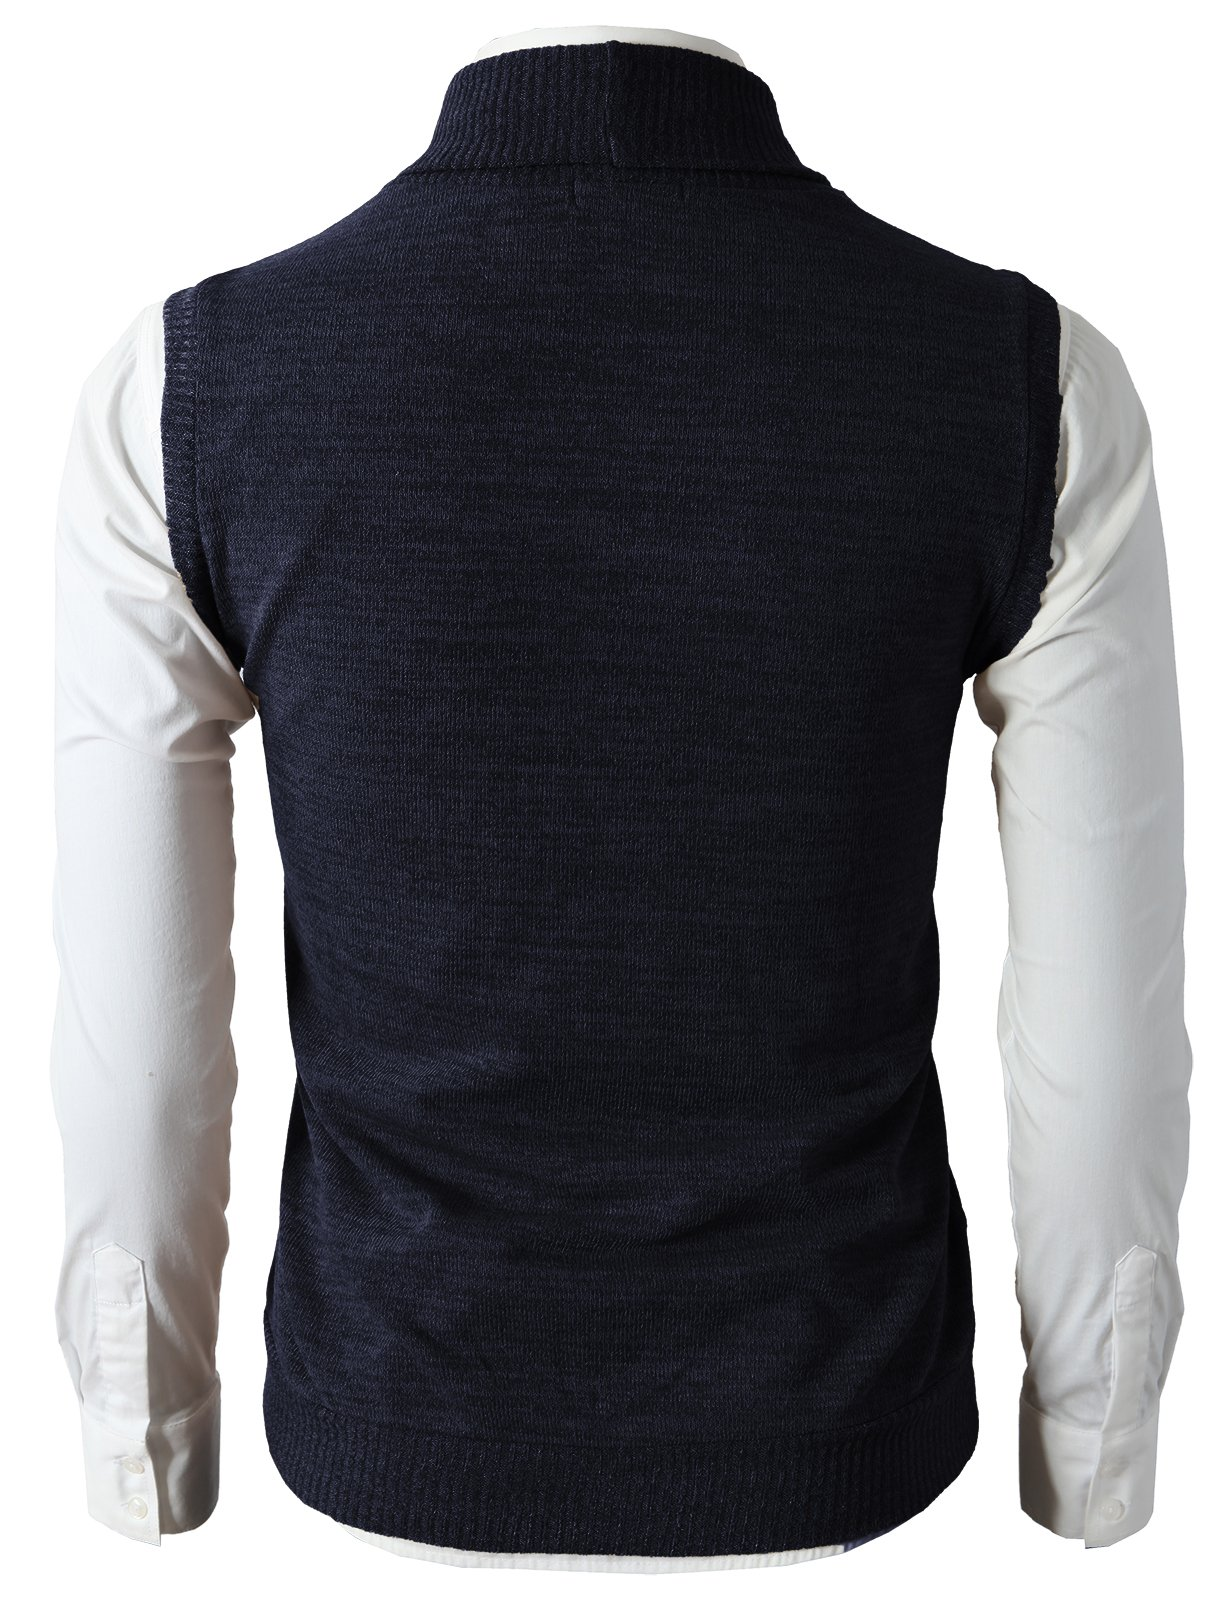 H2H Mens Casual Basic Shawl Collar Fine Knitted Slim Fit Vest Navy US L/Asia XL (CMOV034) by H2H (Image #3)